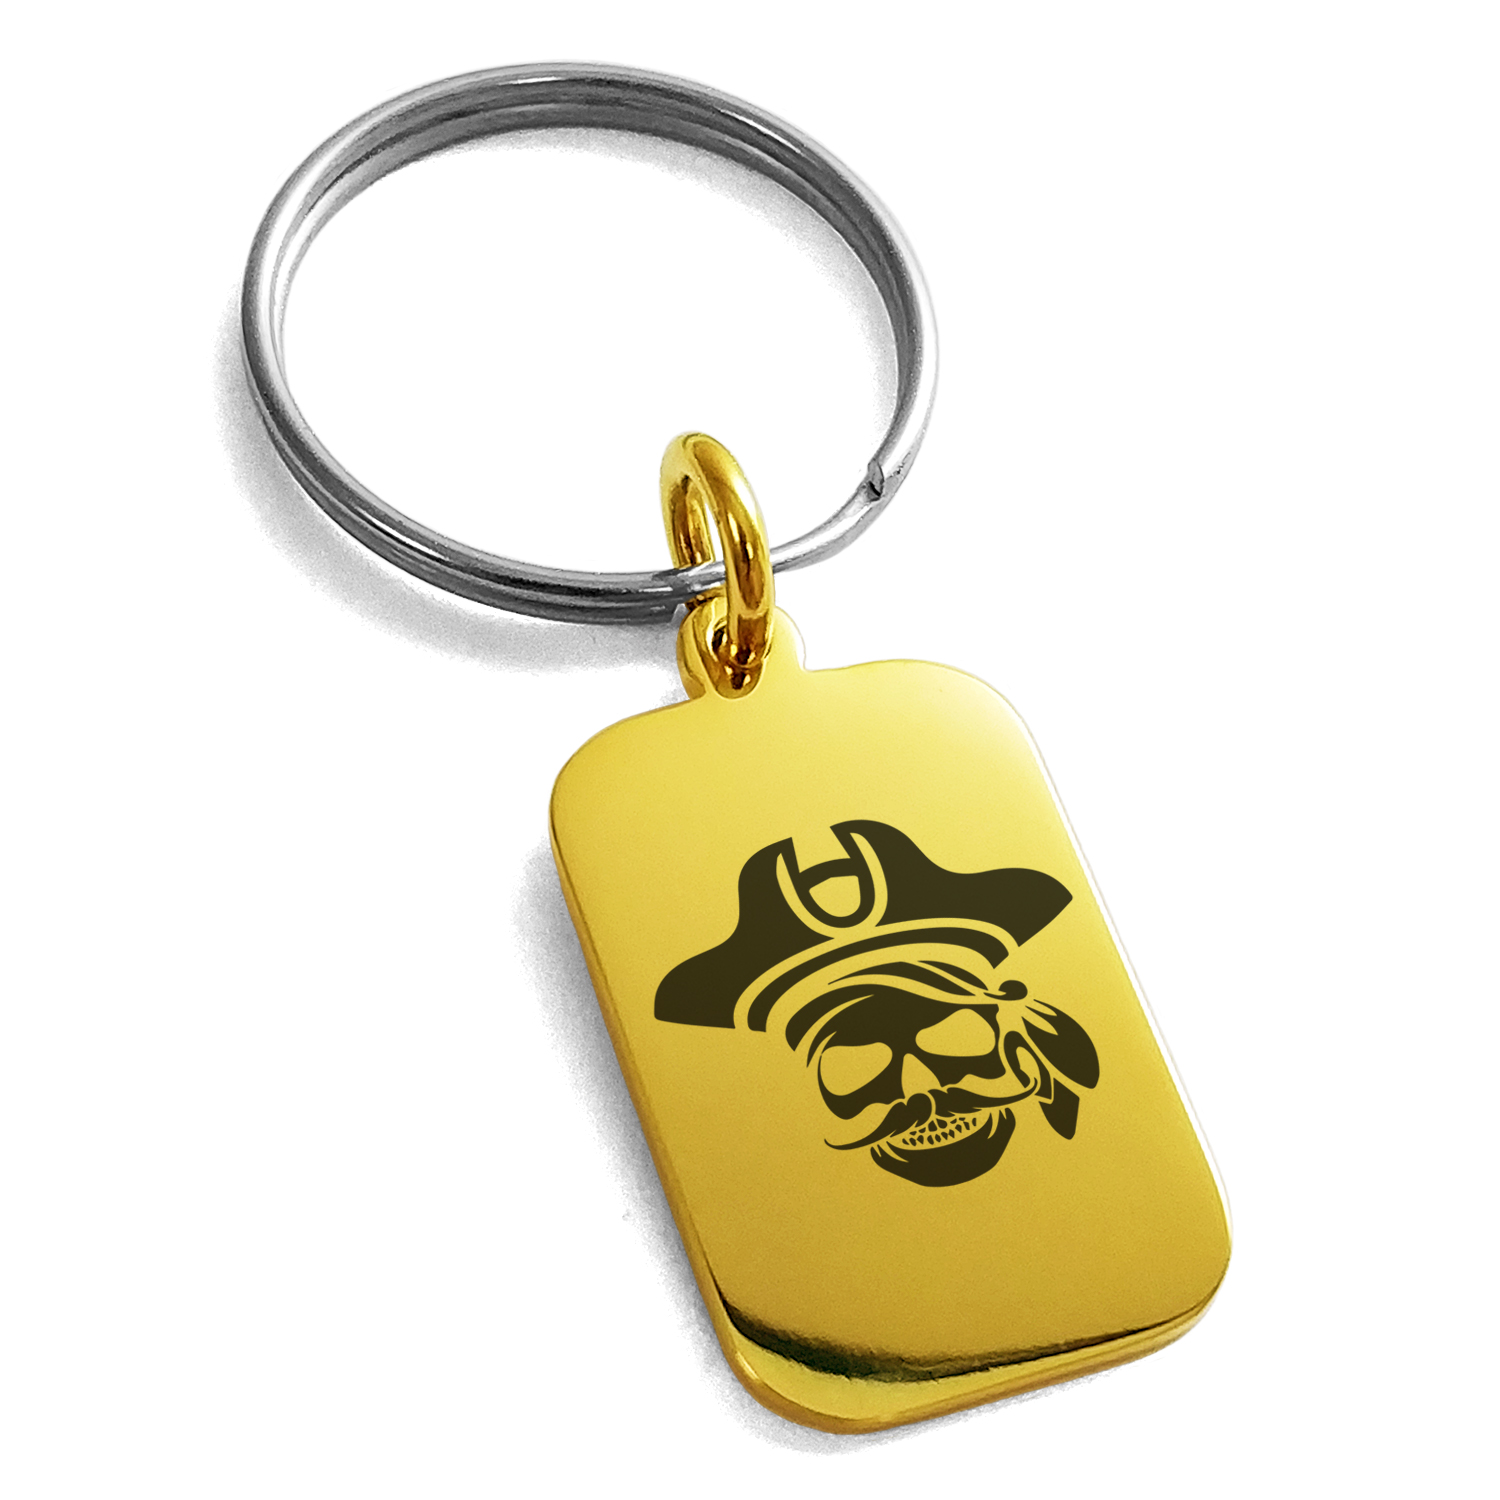 Stainless Steel Sea Dog Pirate Skull Emblem Engraved Small Rectangle Dog Tag Charm Keychain Keyring